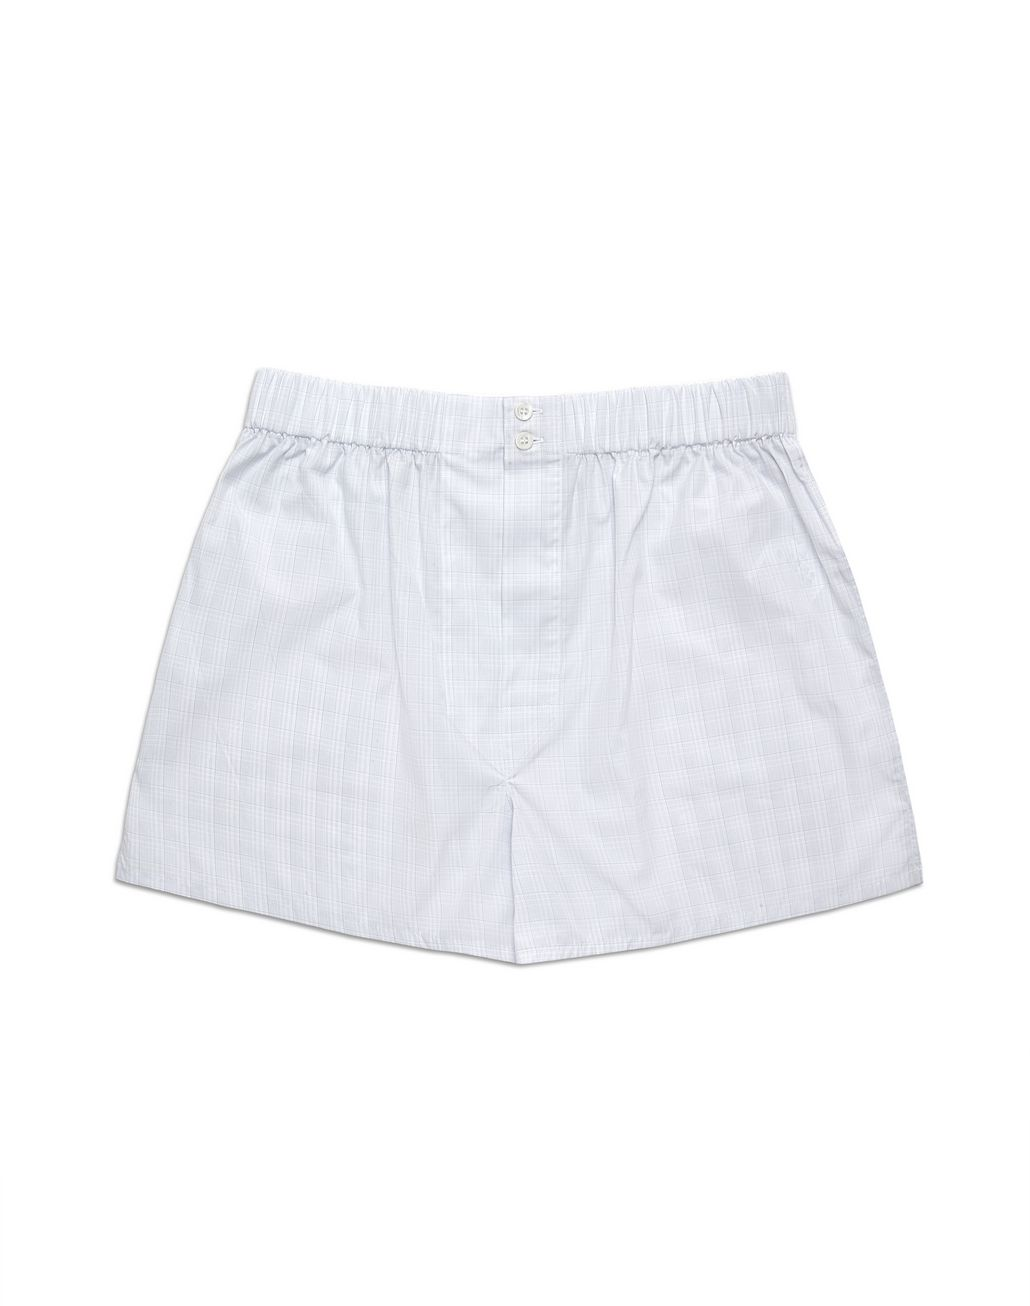 BRIONI Bluette and White Plaid Underwear Underwear Man f